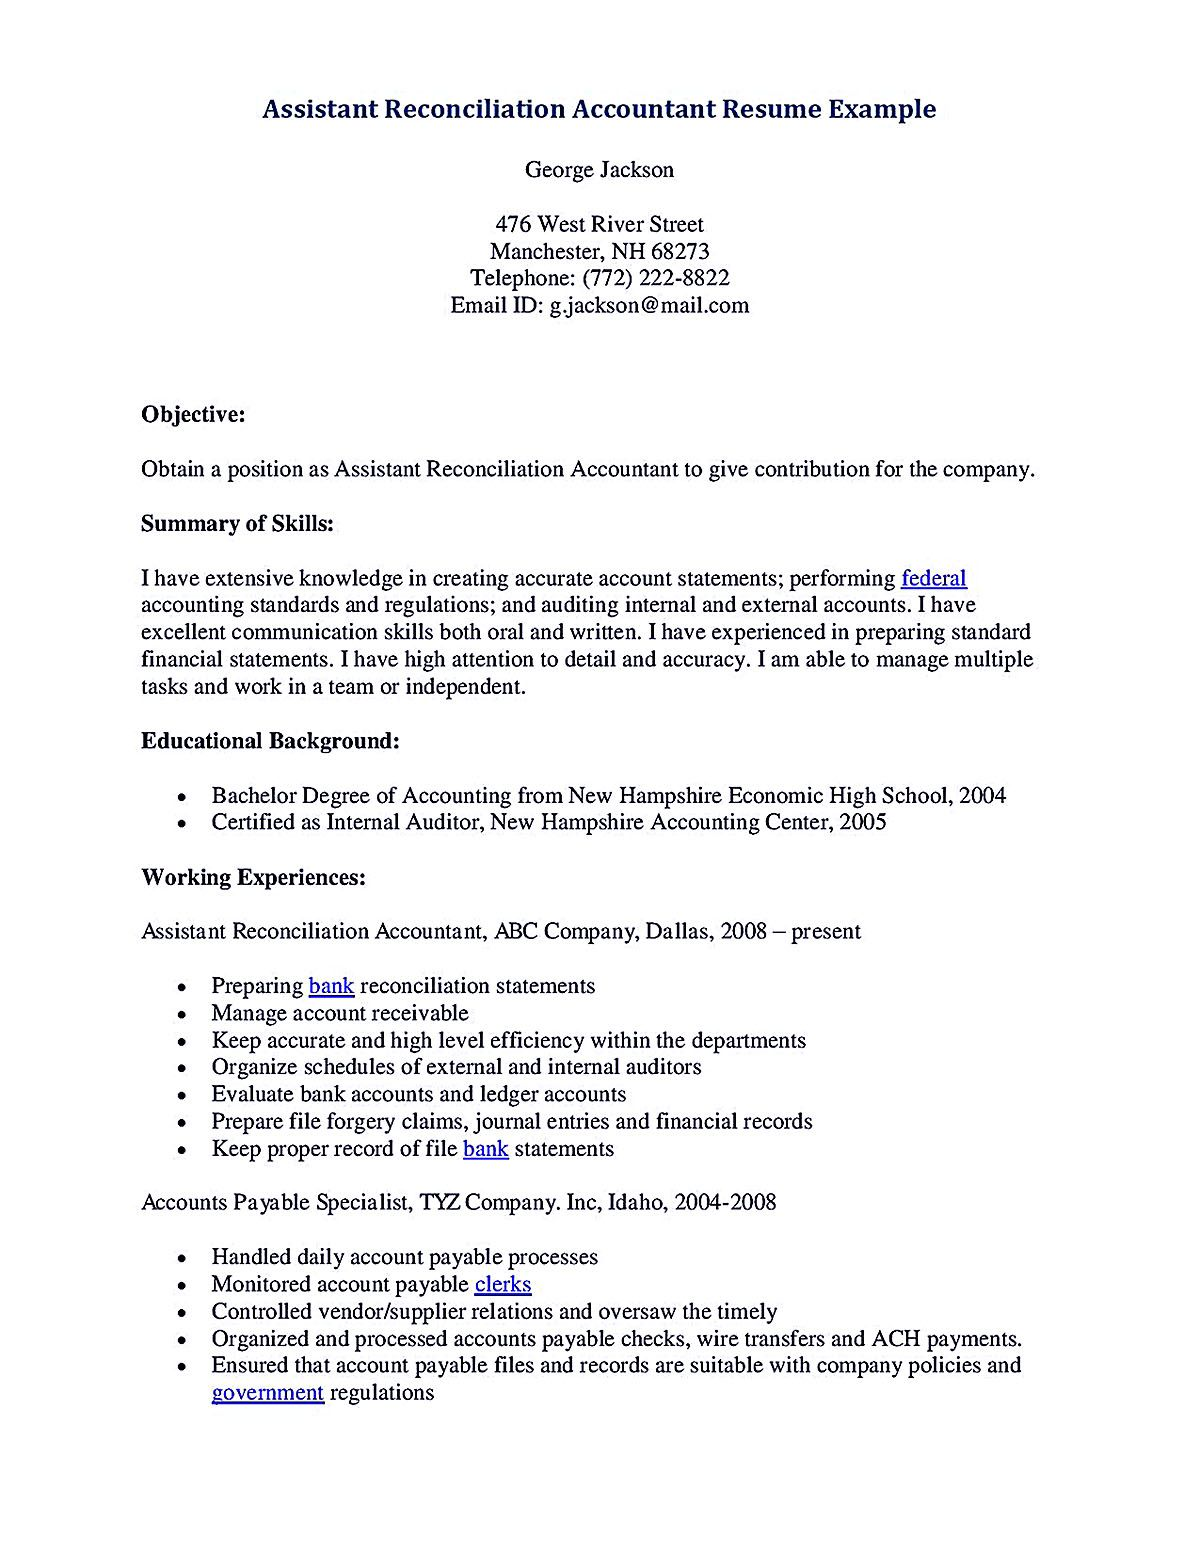 Objective Statement Resume Accounting